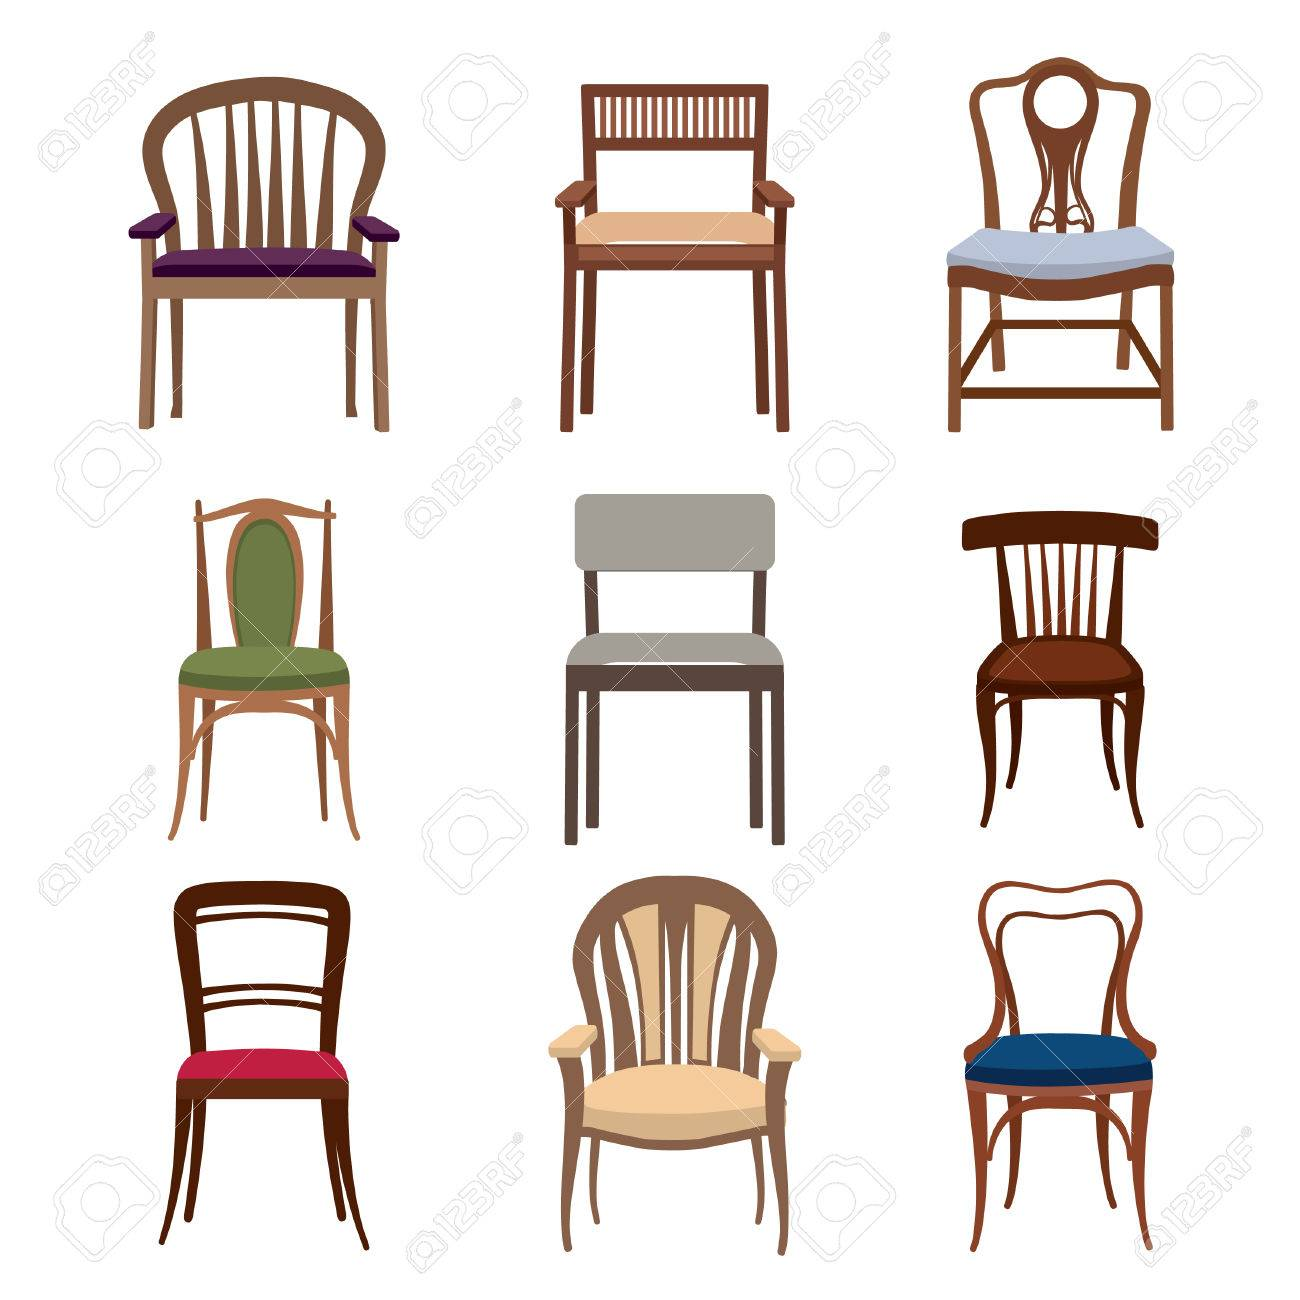 Chairs And Armchairs Icons Set. Furniture Collection Of Different Chairs In  Flat Style. Stock